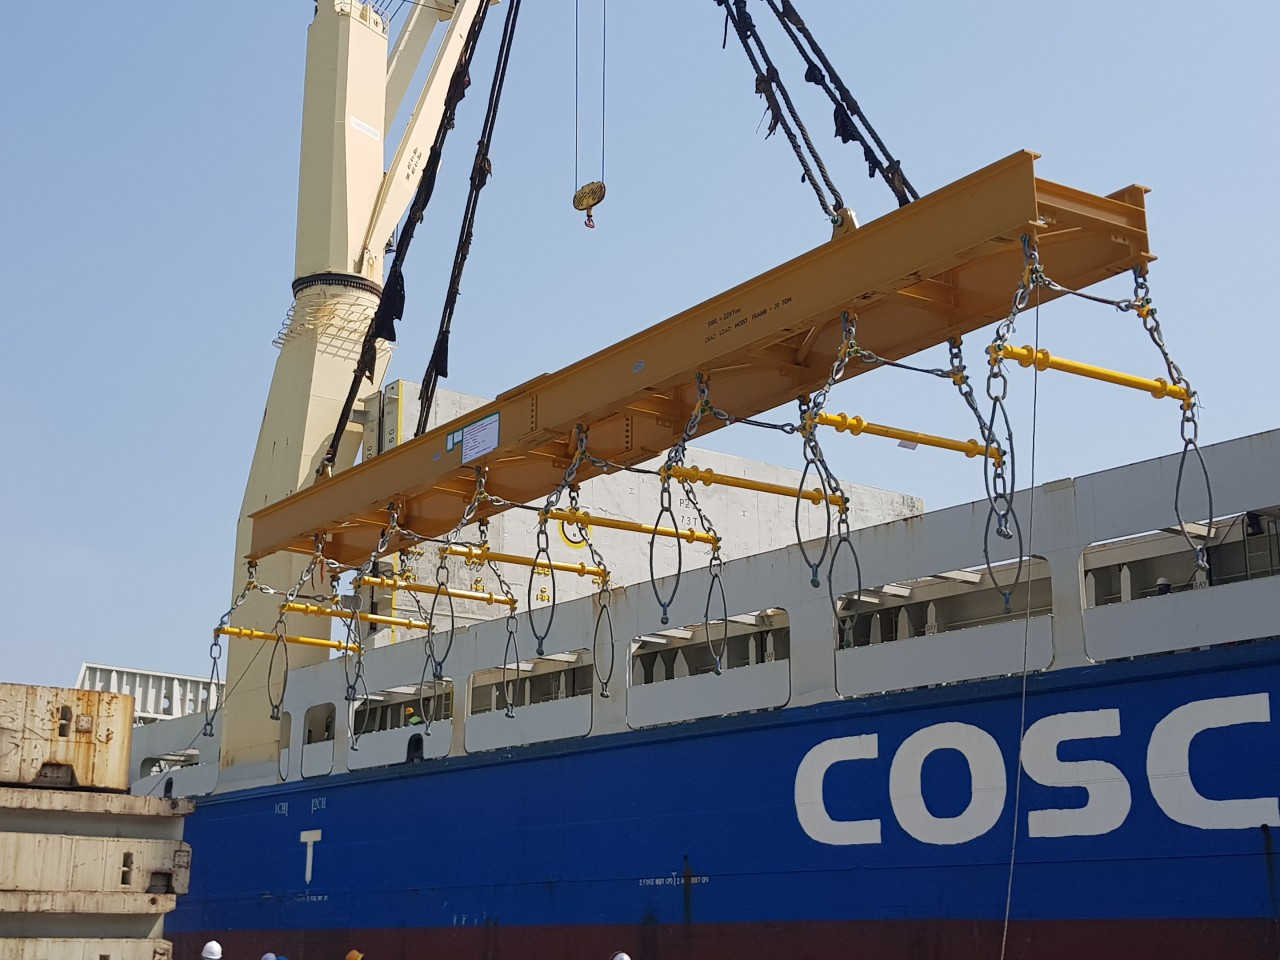 Modulift and Siemens Design Rig for Dockside Lifts